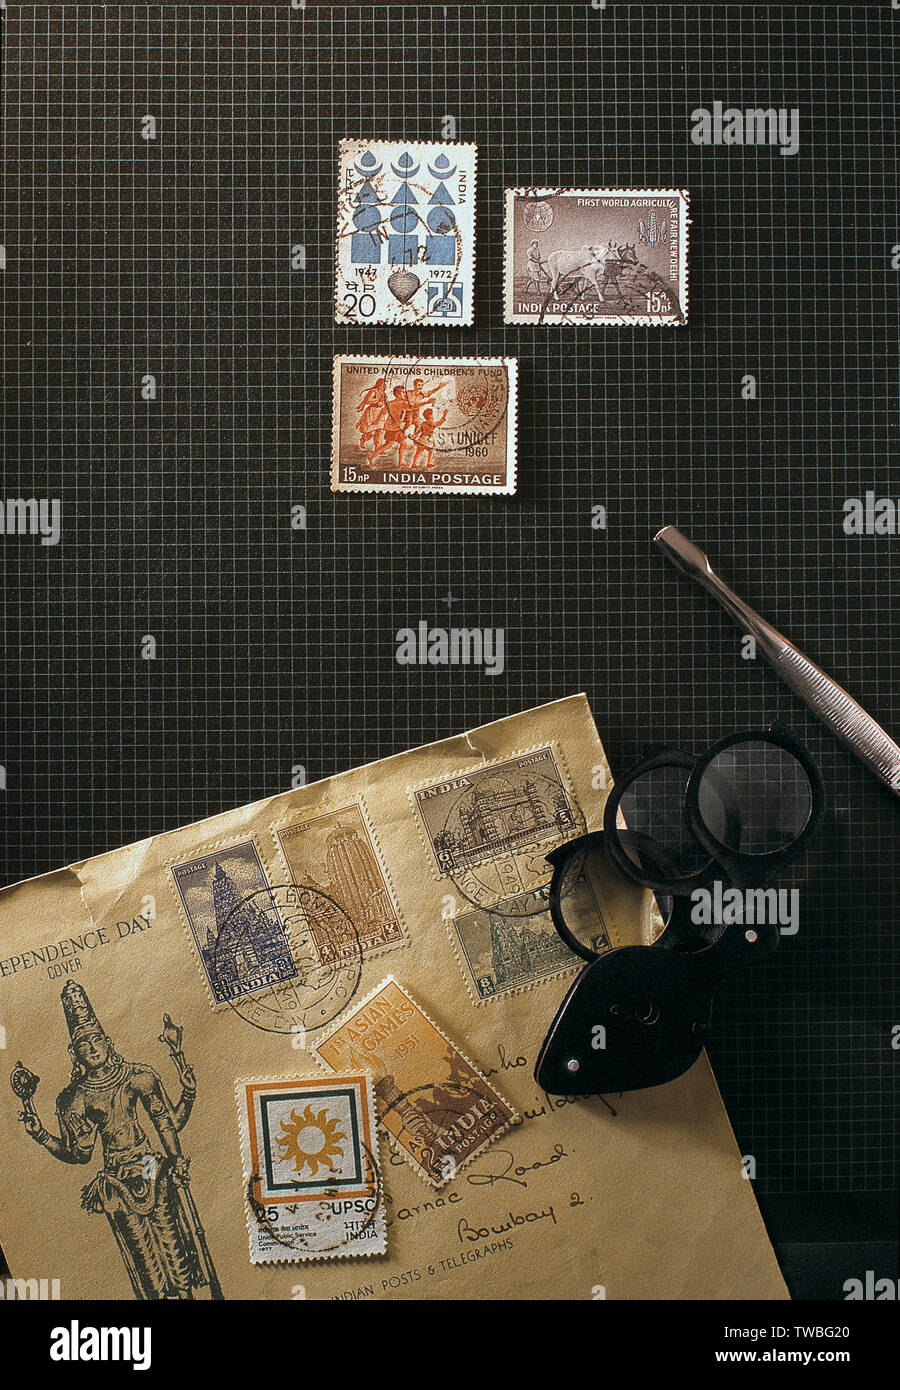 16-Marc-2004-Consept philately postage stamps collectors tools on desk Mumbai maharashtra INDIA - Stock Image